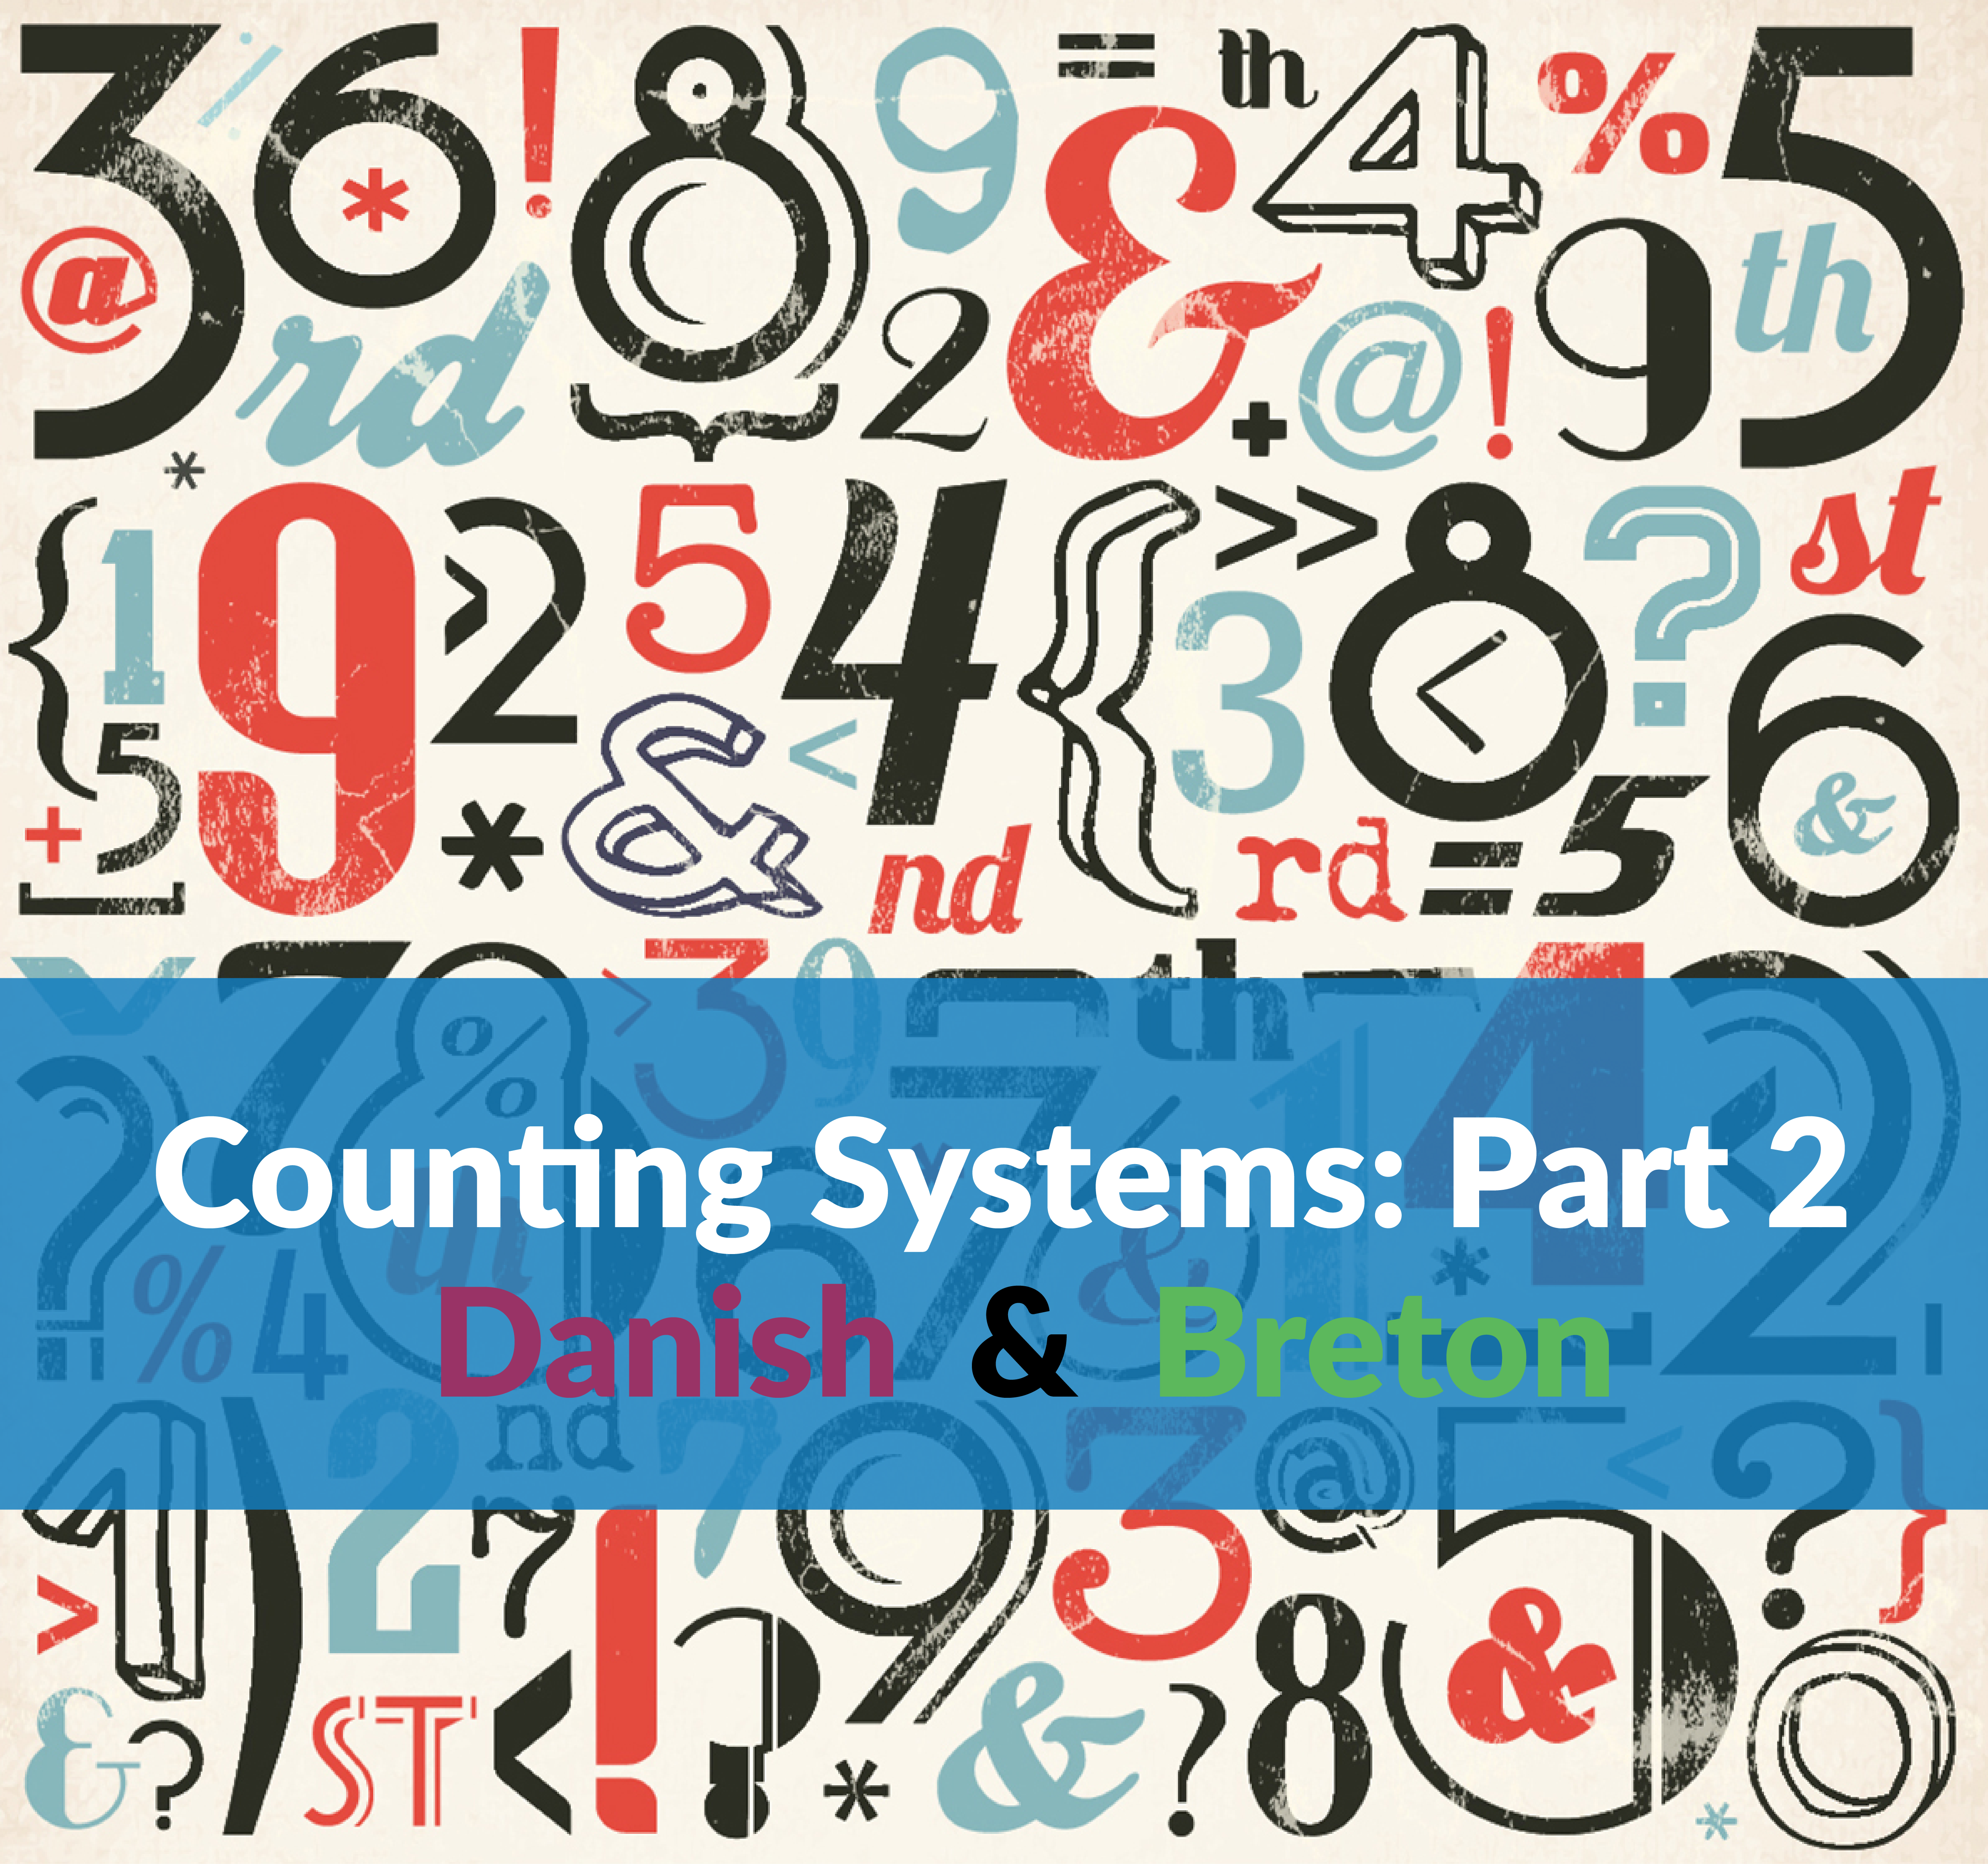 Counting systems - Part 2